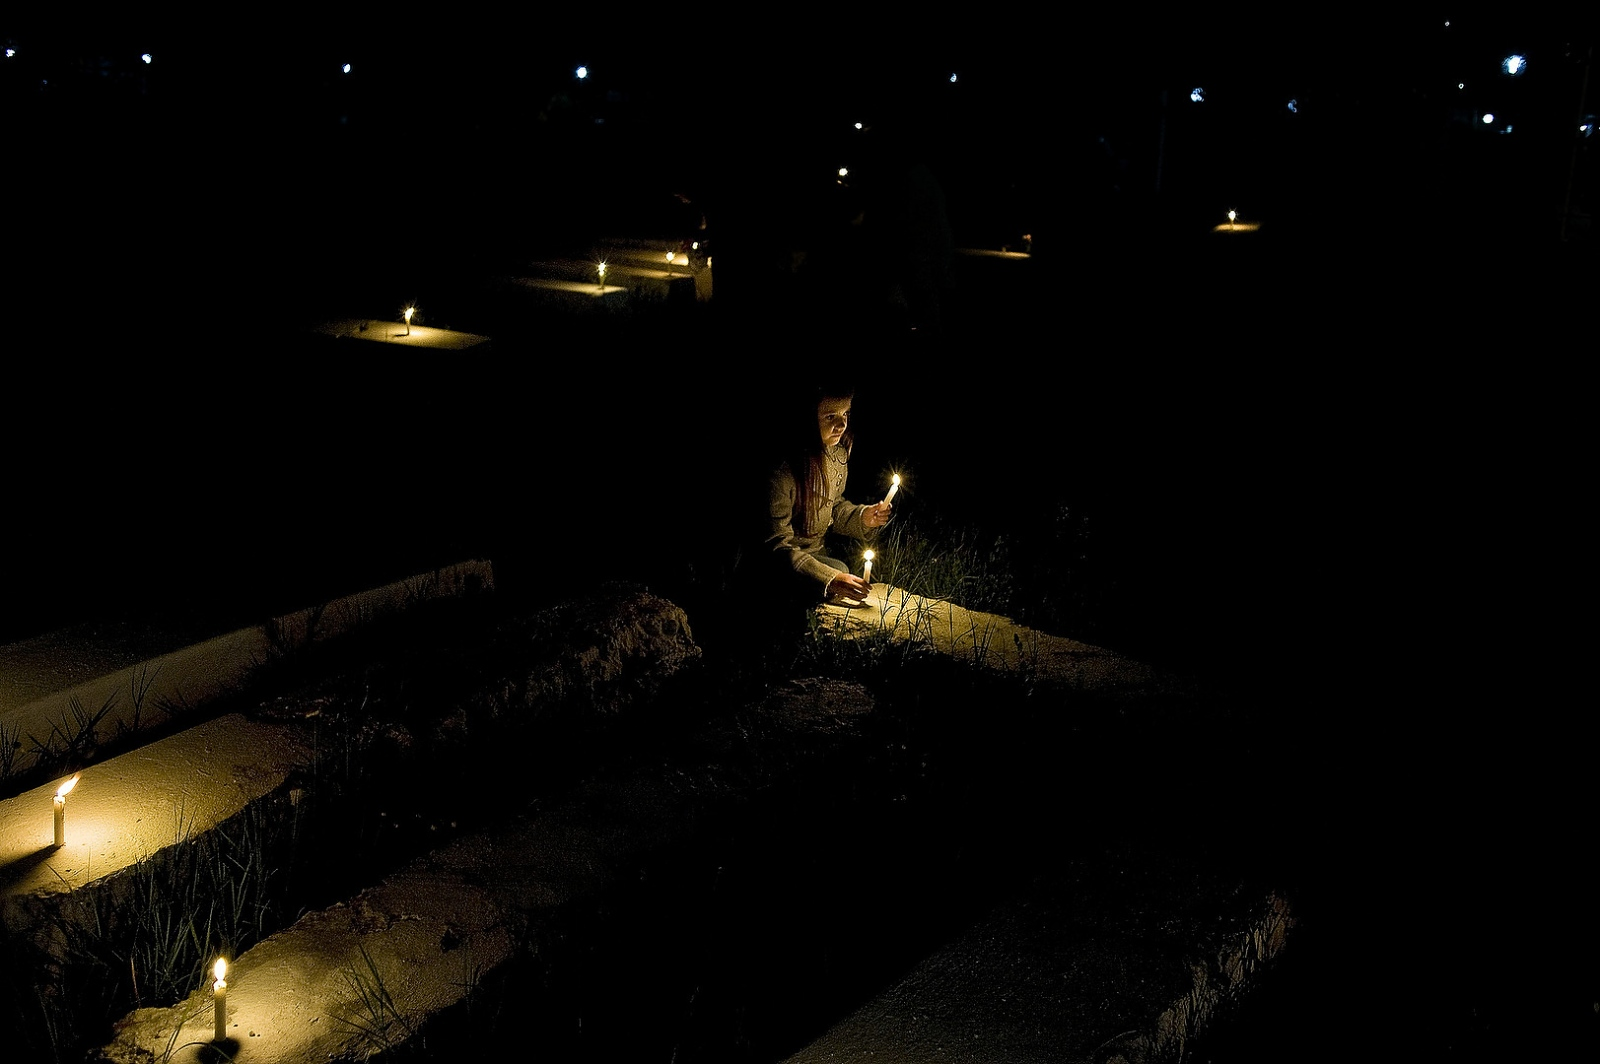 2010 - A young girl places candles on gravestones at the Jewish Cemetery of Ouazanne during the hilloulla or pilgrimage of Rabbi Amran Ben Diwan. During the yearly hilloulla hundreds of Jews return to his gravesite where they sleep for three days, pray and celebrate. His is one of the largest of many Hilloulot that take place all over the country.